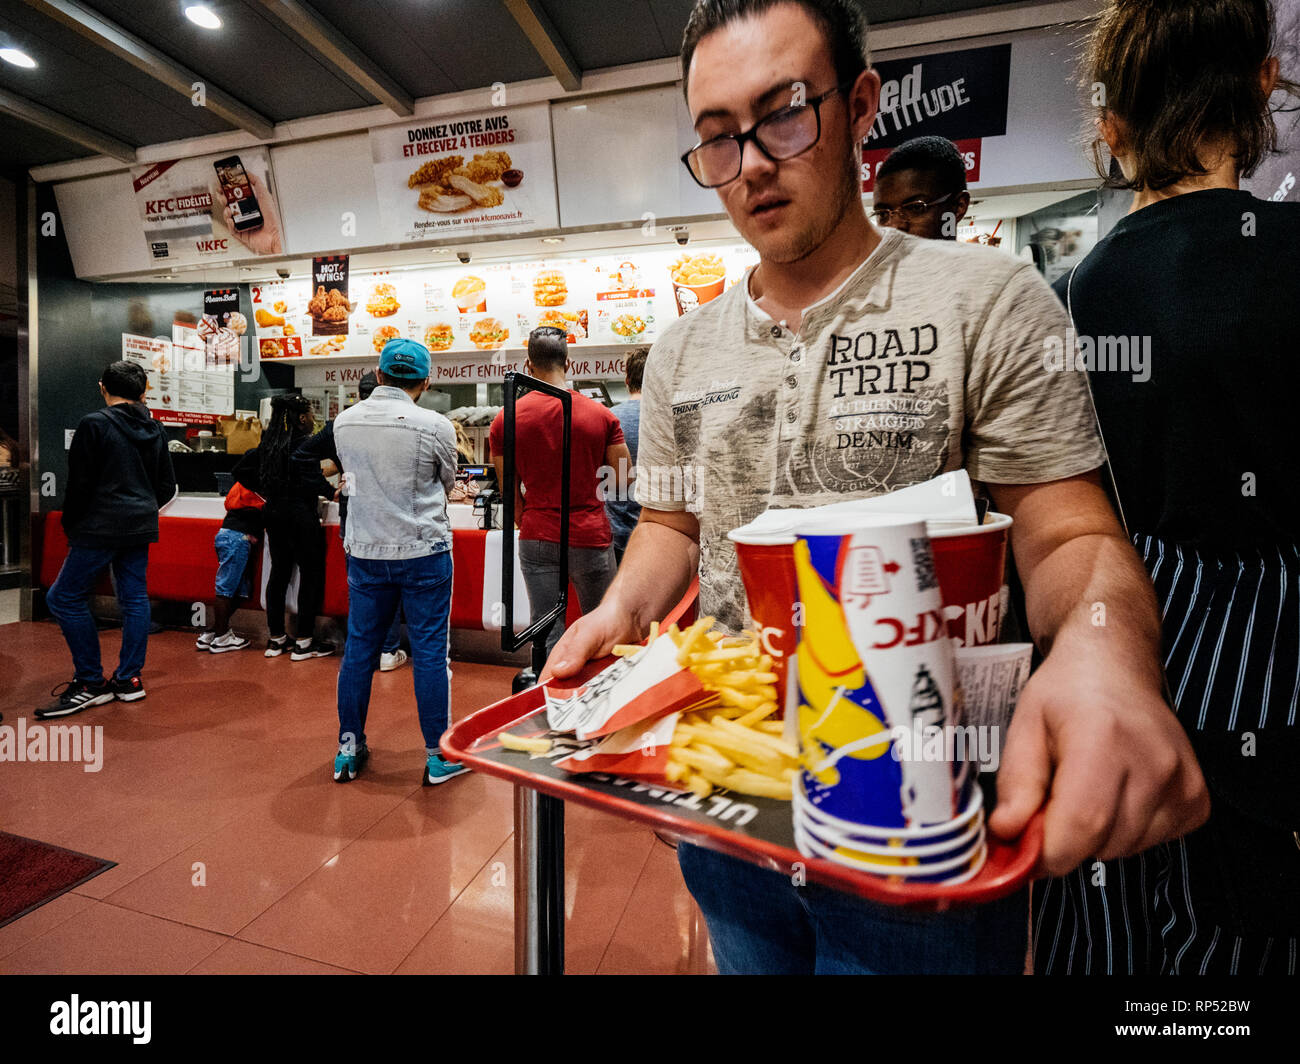 PARIS, FRANCE - OCT 13, 2018: Young man with lots of fast-food inside KFC Kentucky Fried Chicken restaurant Stock Photo